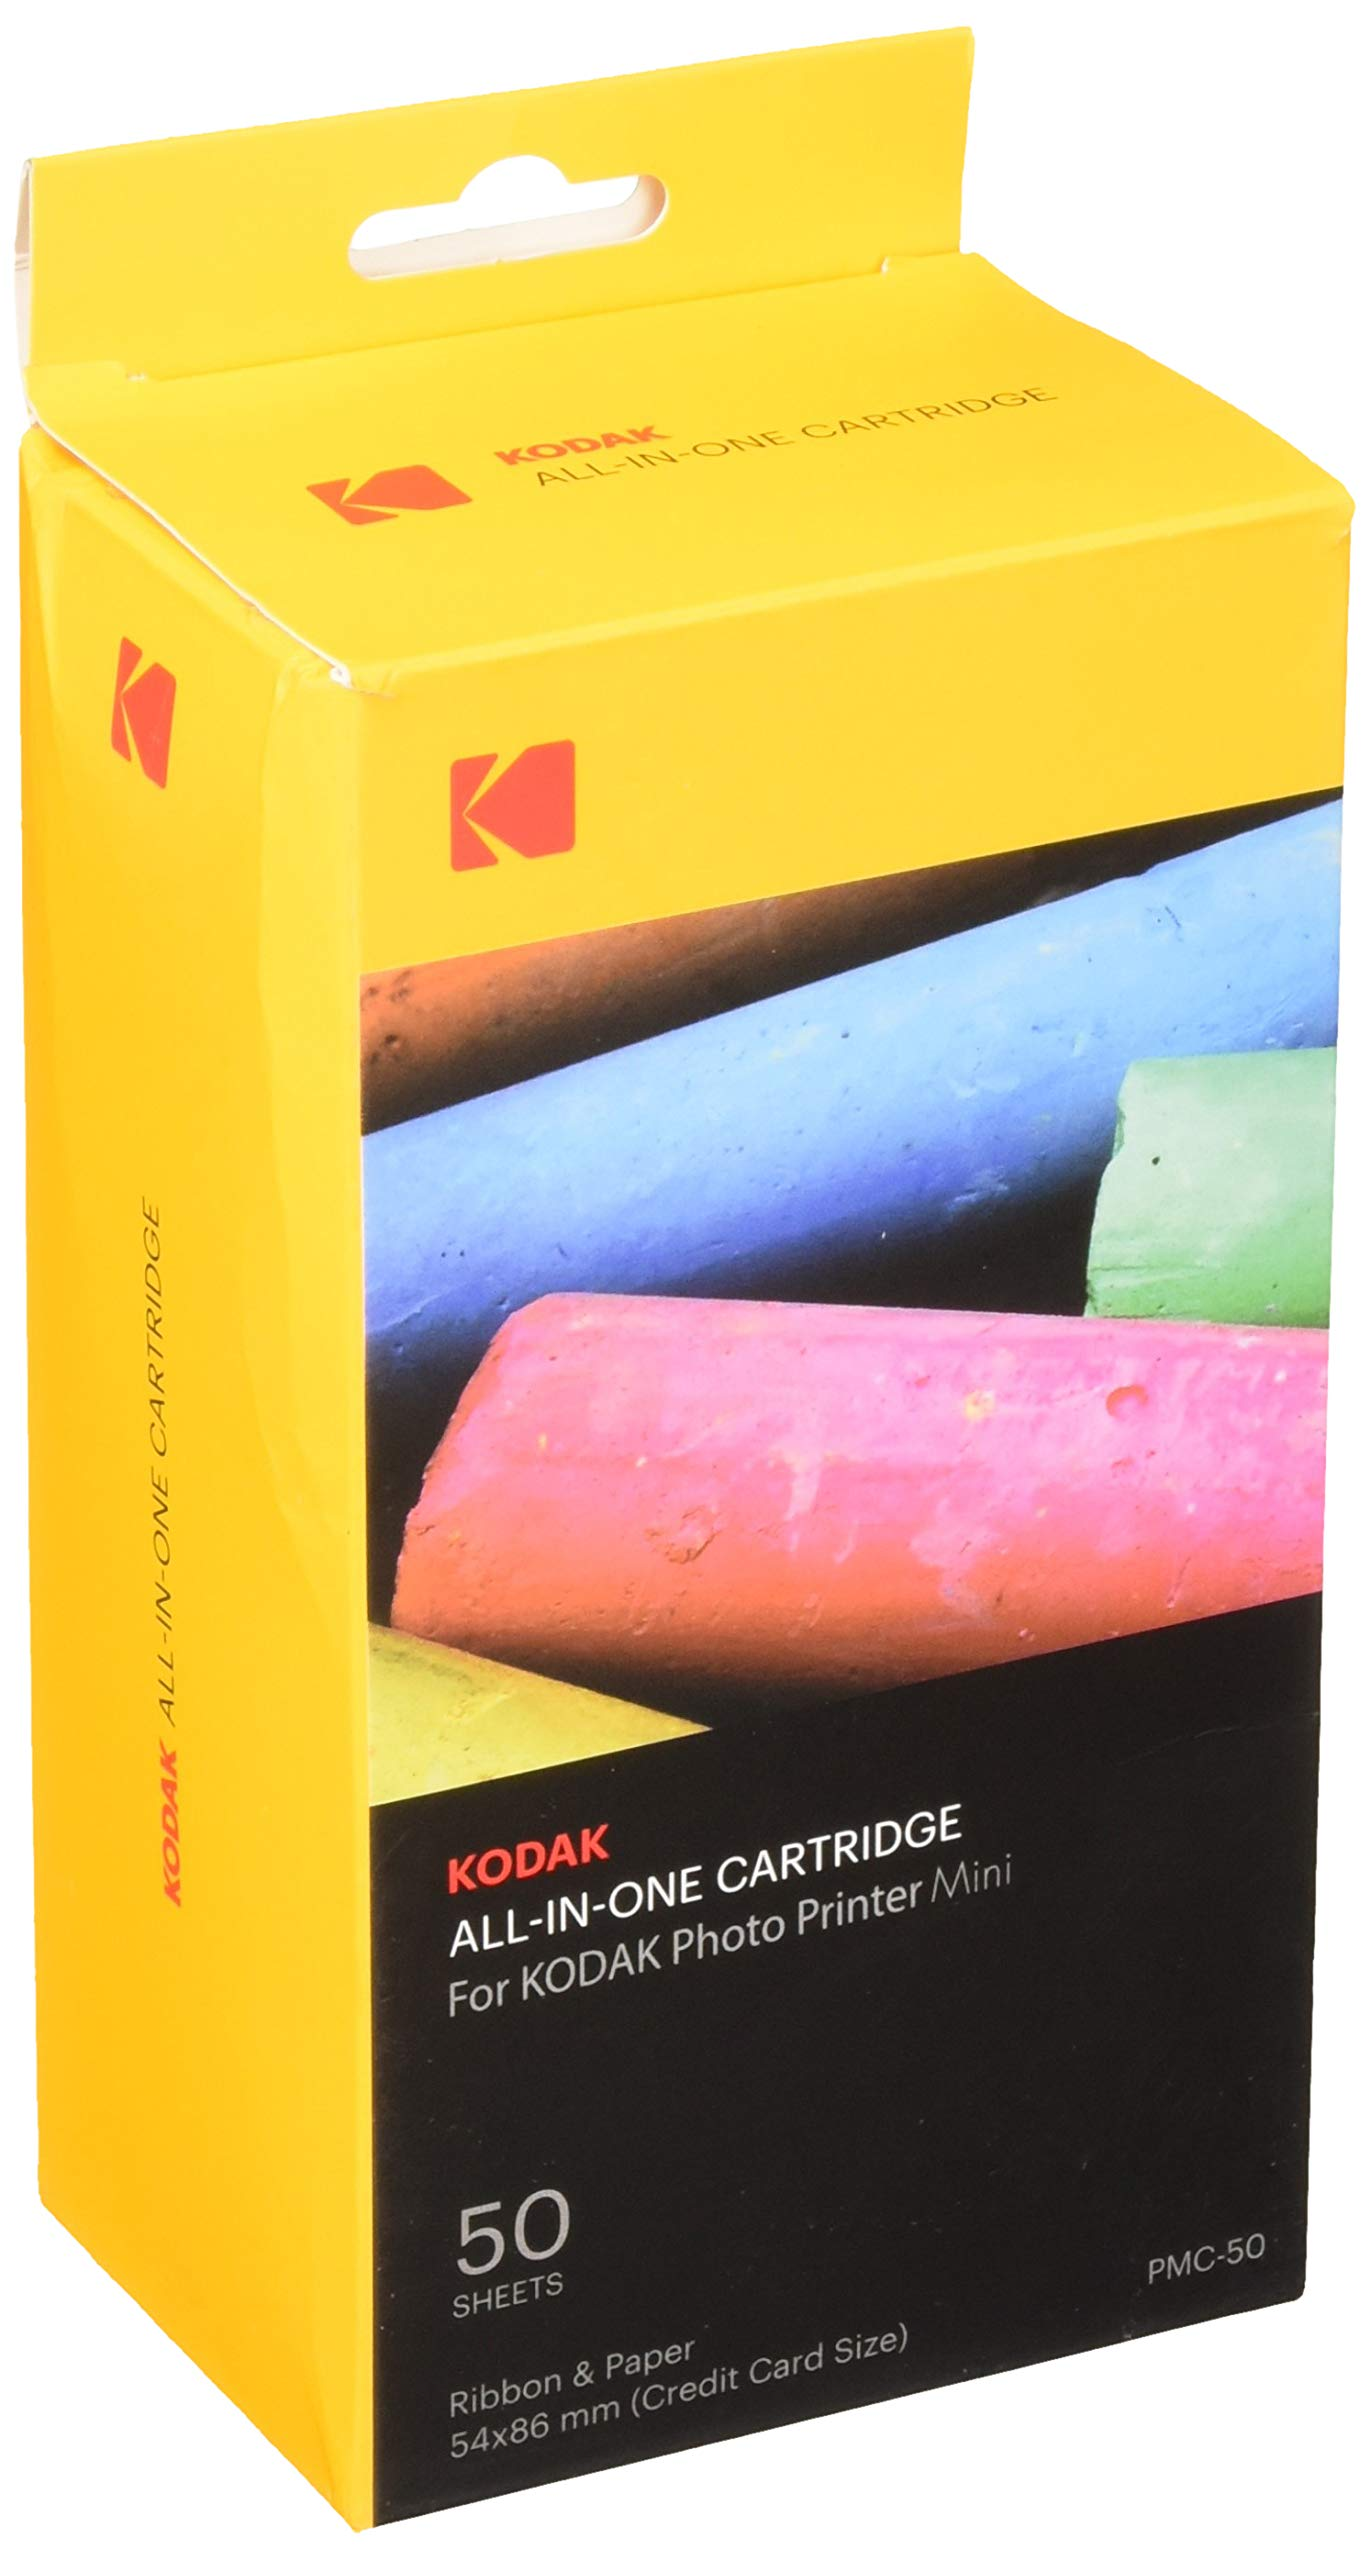 Kodak Mini Photo Printer Cartridge PMC - All-in-One Paper & Color Ink Cartridge Refill - 50 Pack (Compatible ONLY with Original MINI Printer, NOT Mini2, Mini Shot)